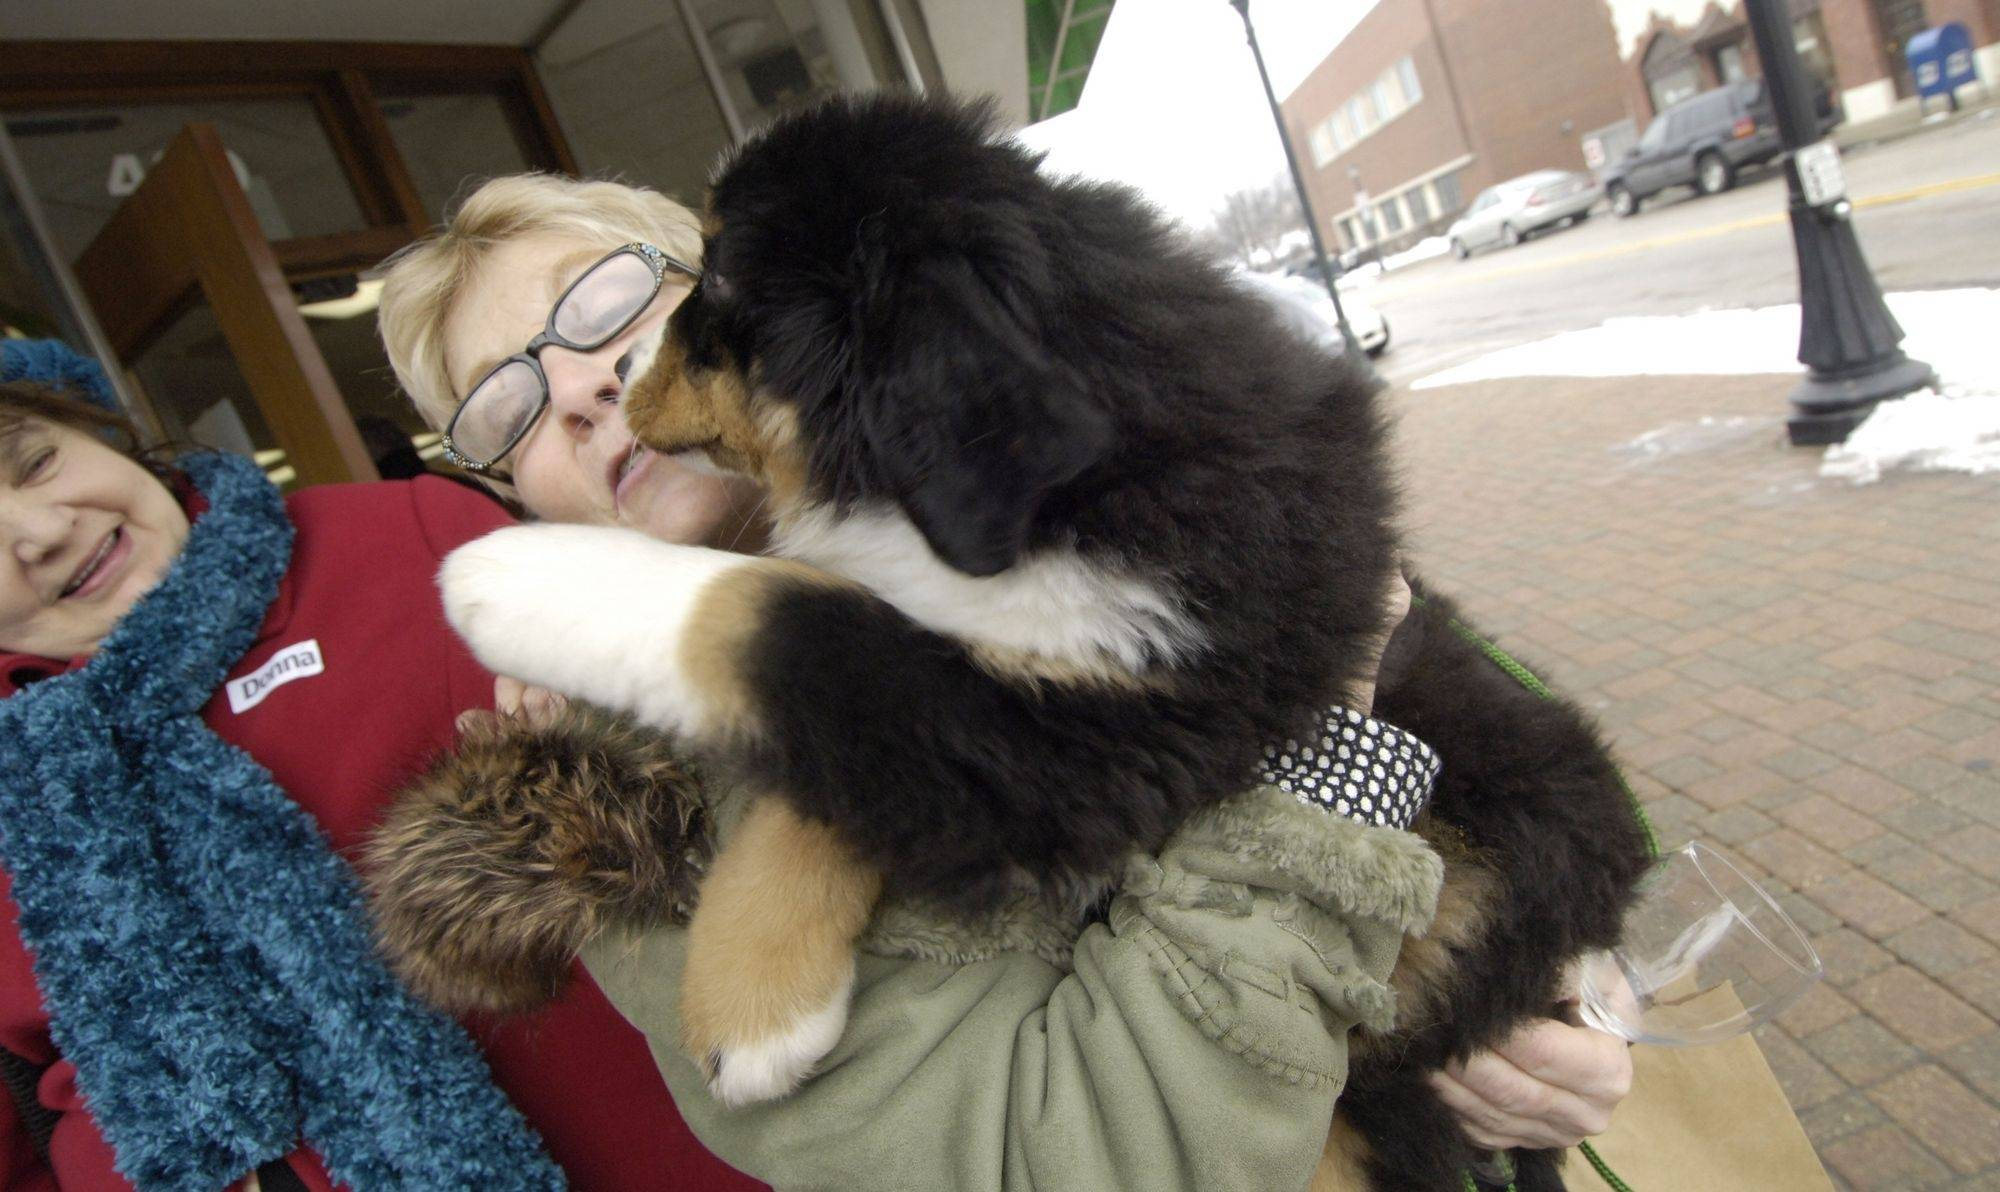 Linda Malinowski of Gurnee visits with Danko, a Burnese mountain dog, during Saturday's wine tasting at stores along Milwaukee Avenue in downtown Libertyville.